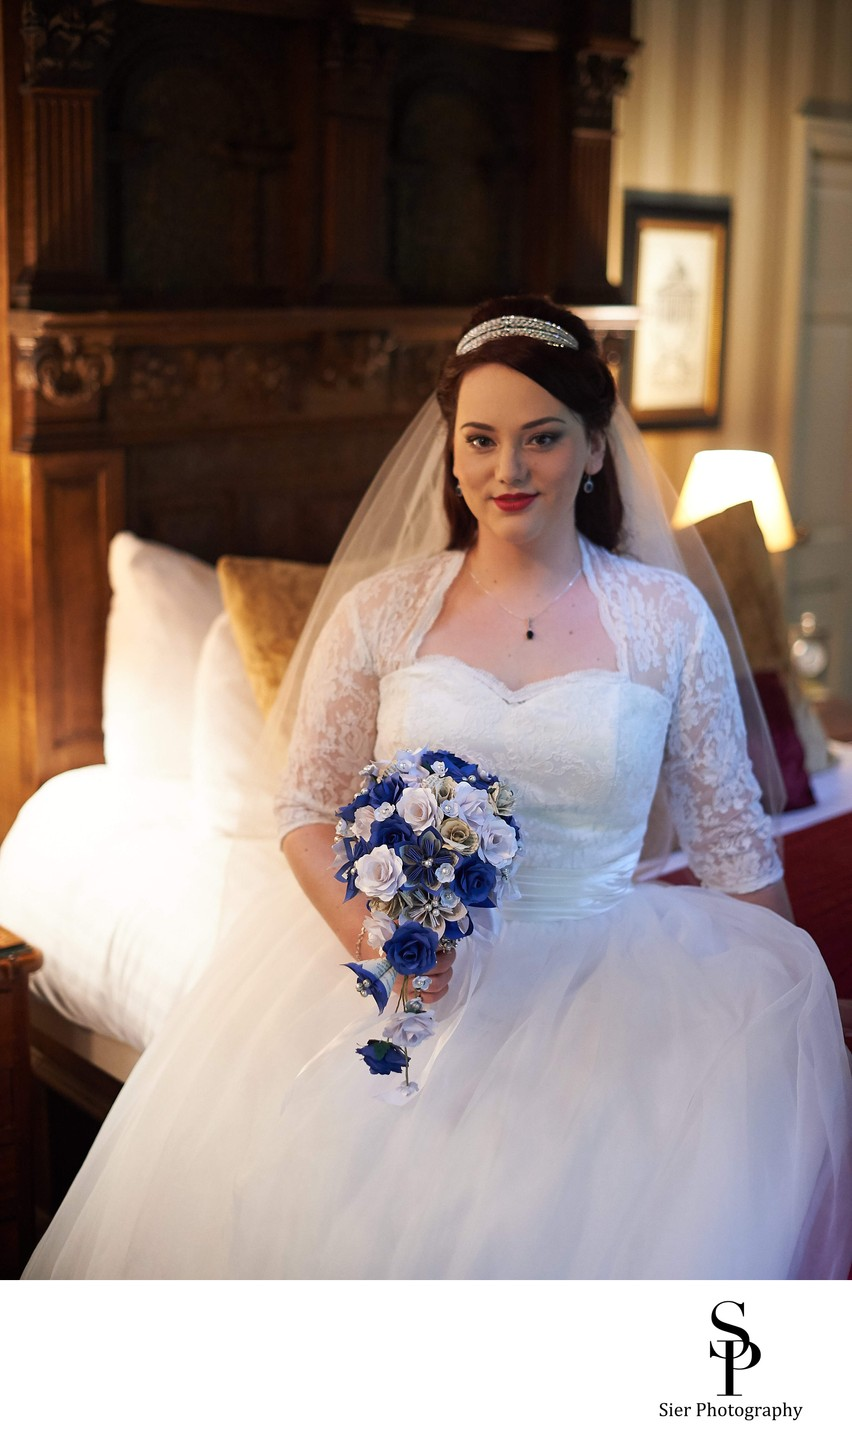 Whitley Hall Hotel Bridal Portrait